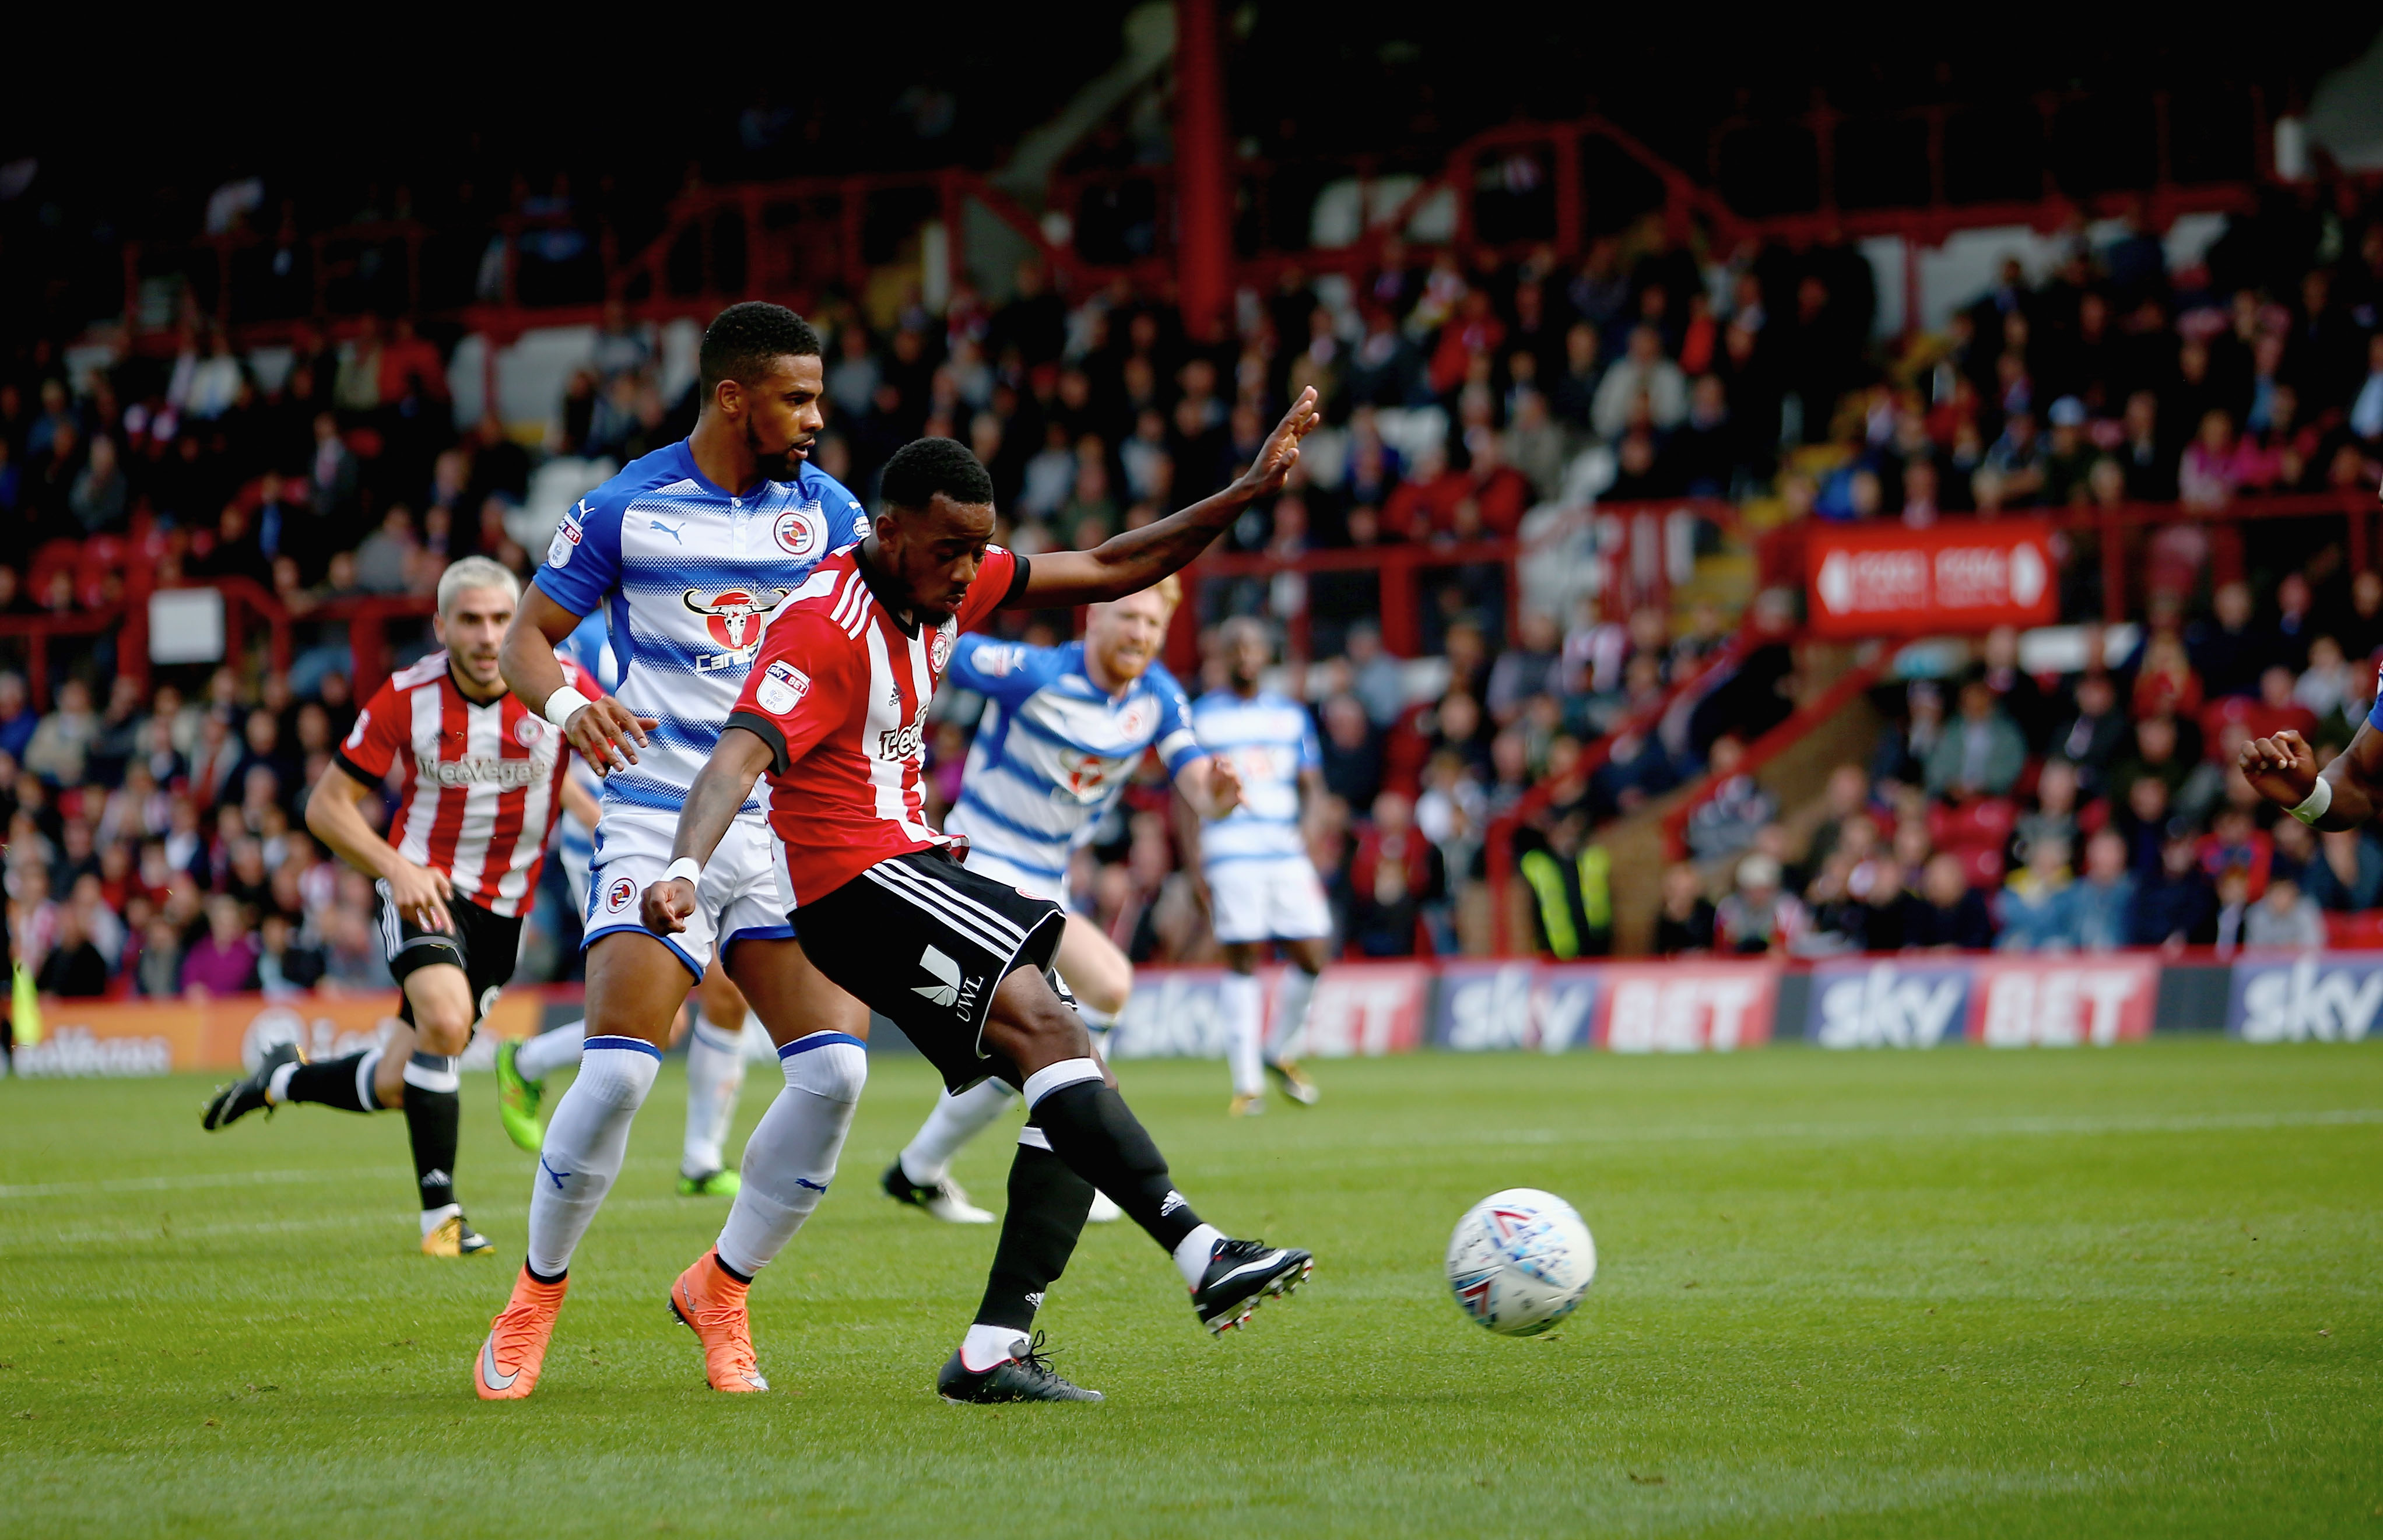 Brentford v Reading - Sky Bet Championship